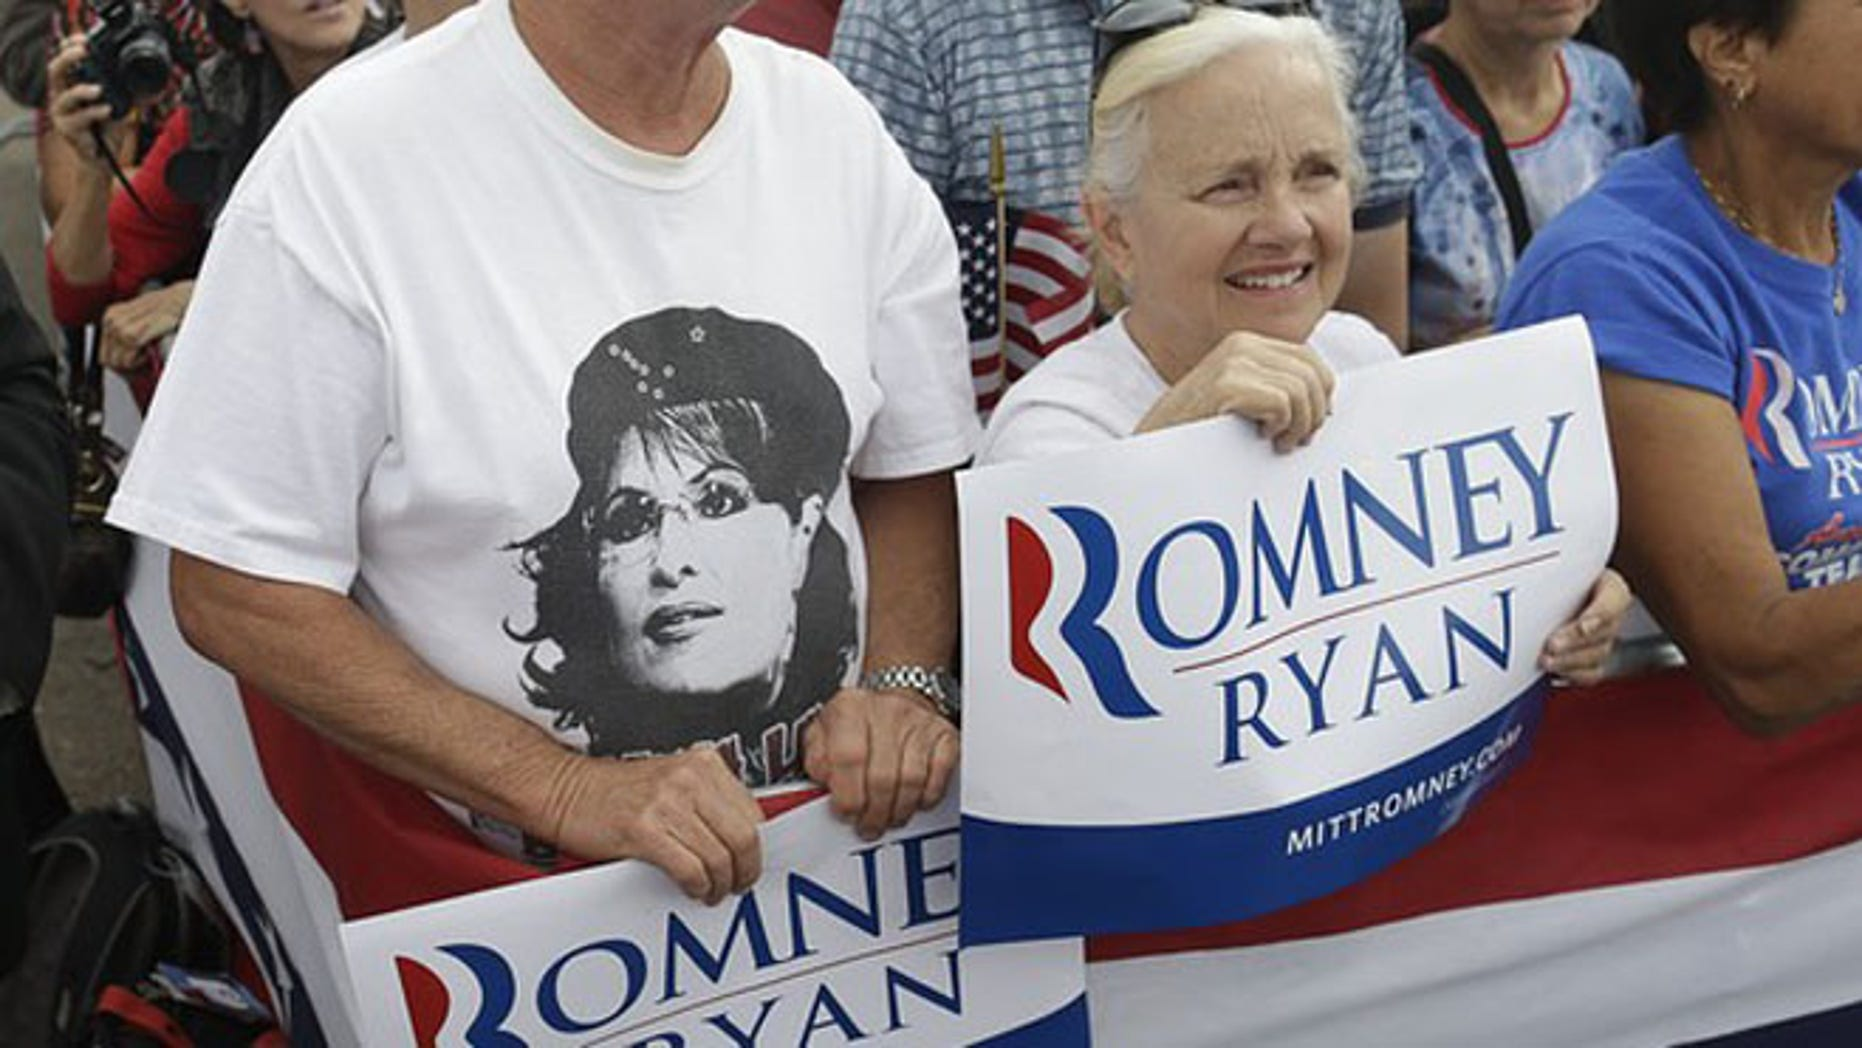 FILE: Sept. 24, 2012: The image of Sarah Palin is seen on a T-shirt as Mitt Romney campaigns in Pueblo, Colo.